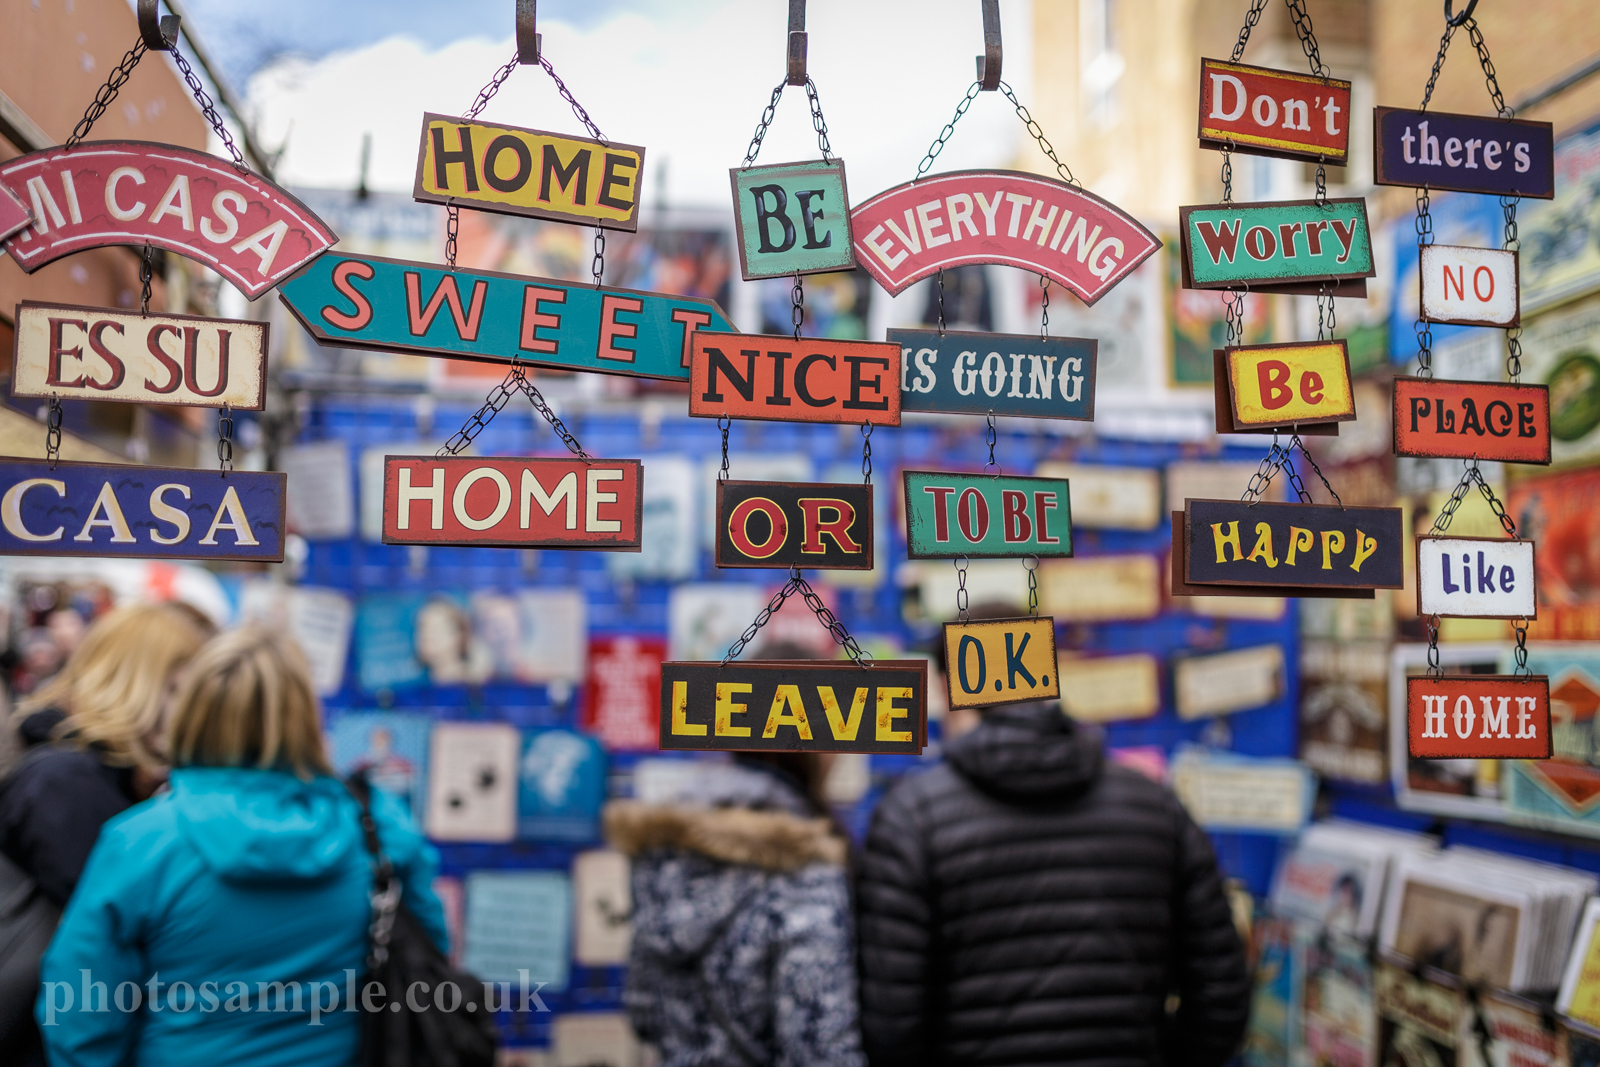 Portobello Market walk 22.02.2014 London UK